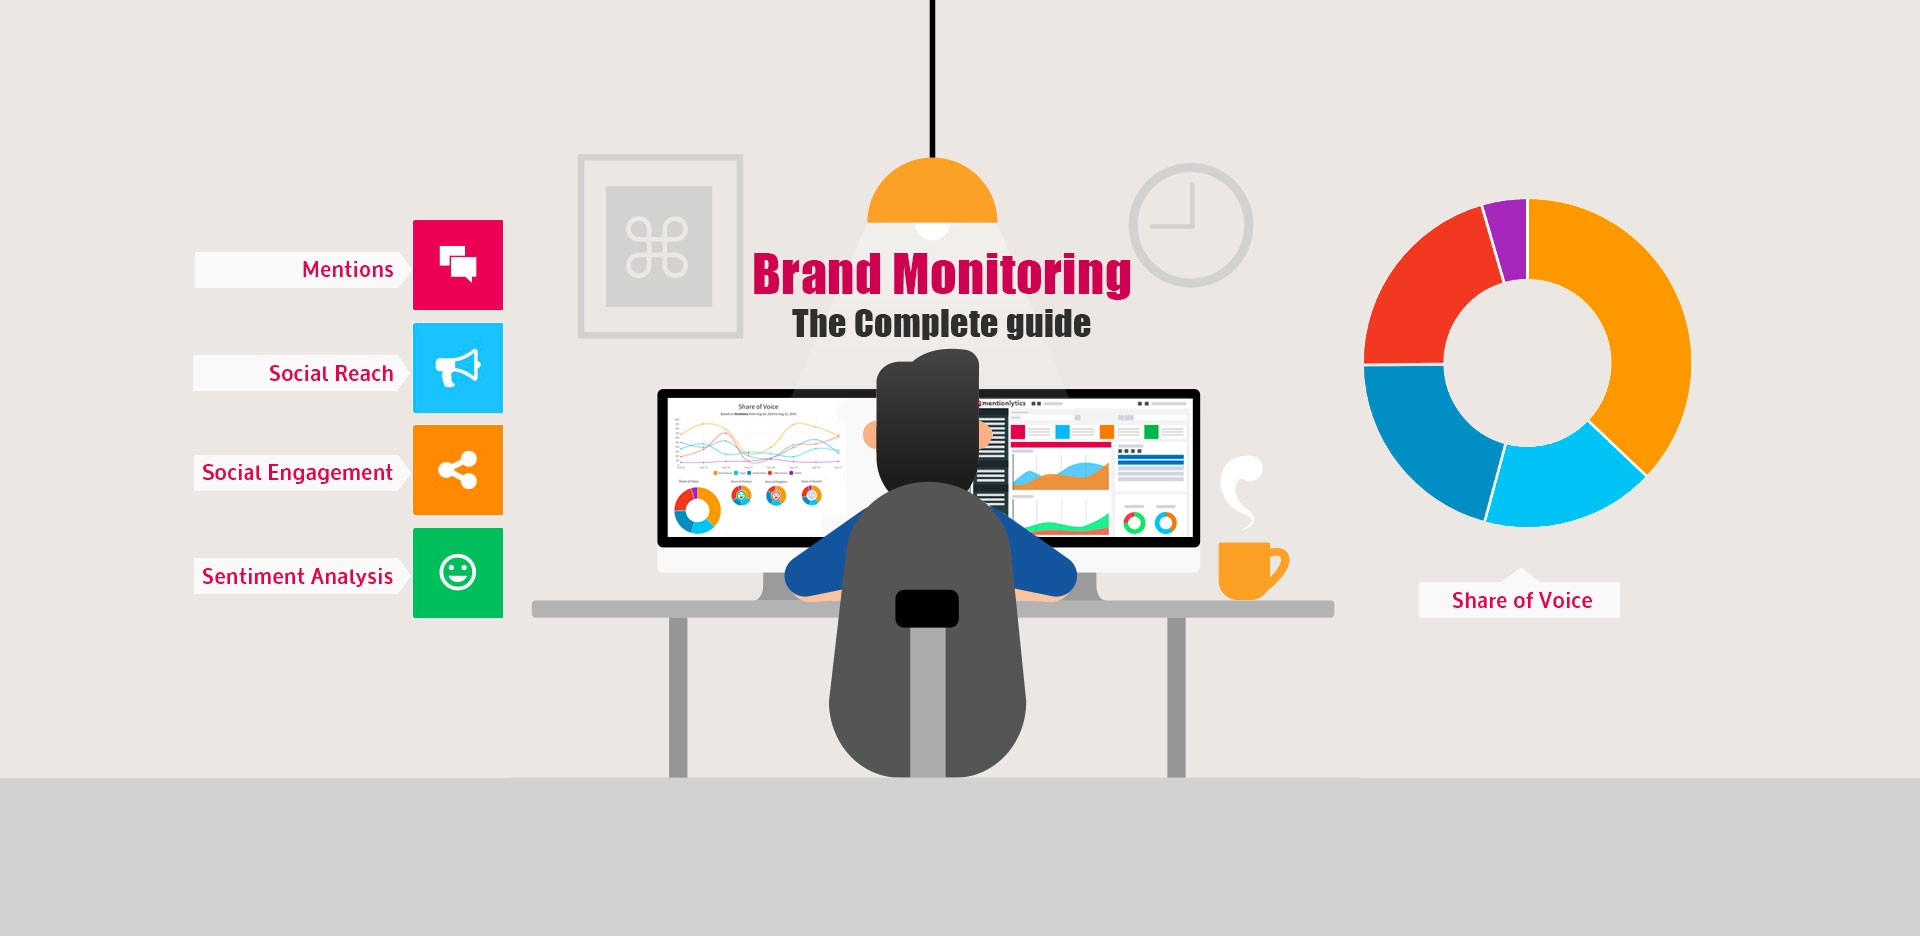 Reasons To Check Your Brand Monitoring On Social Media: It's More Important Than You Think